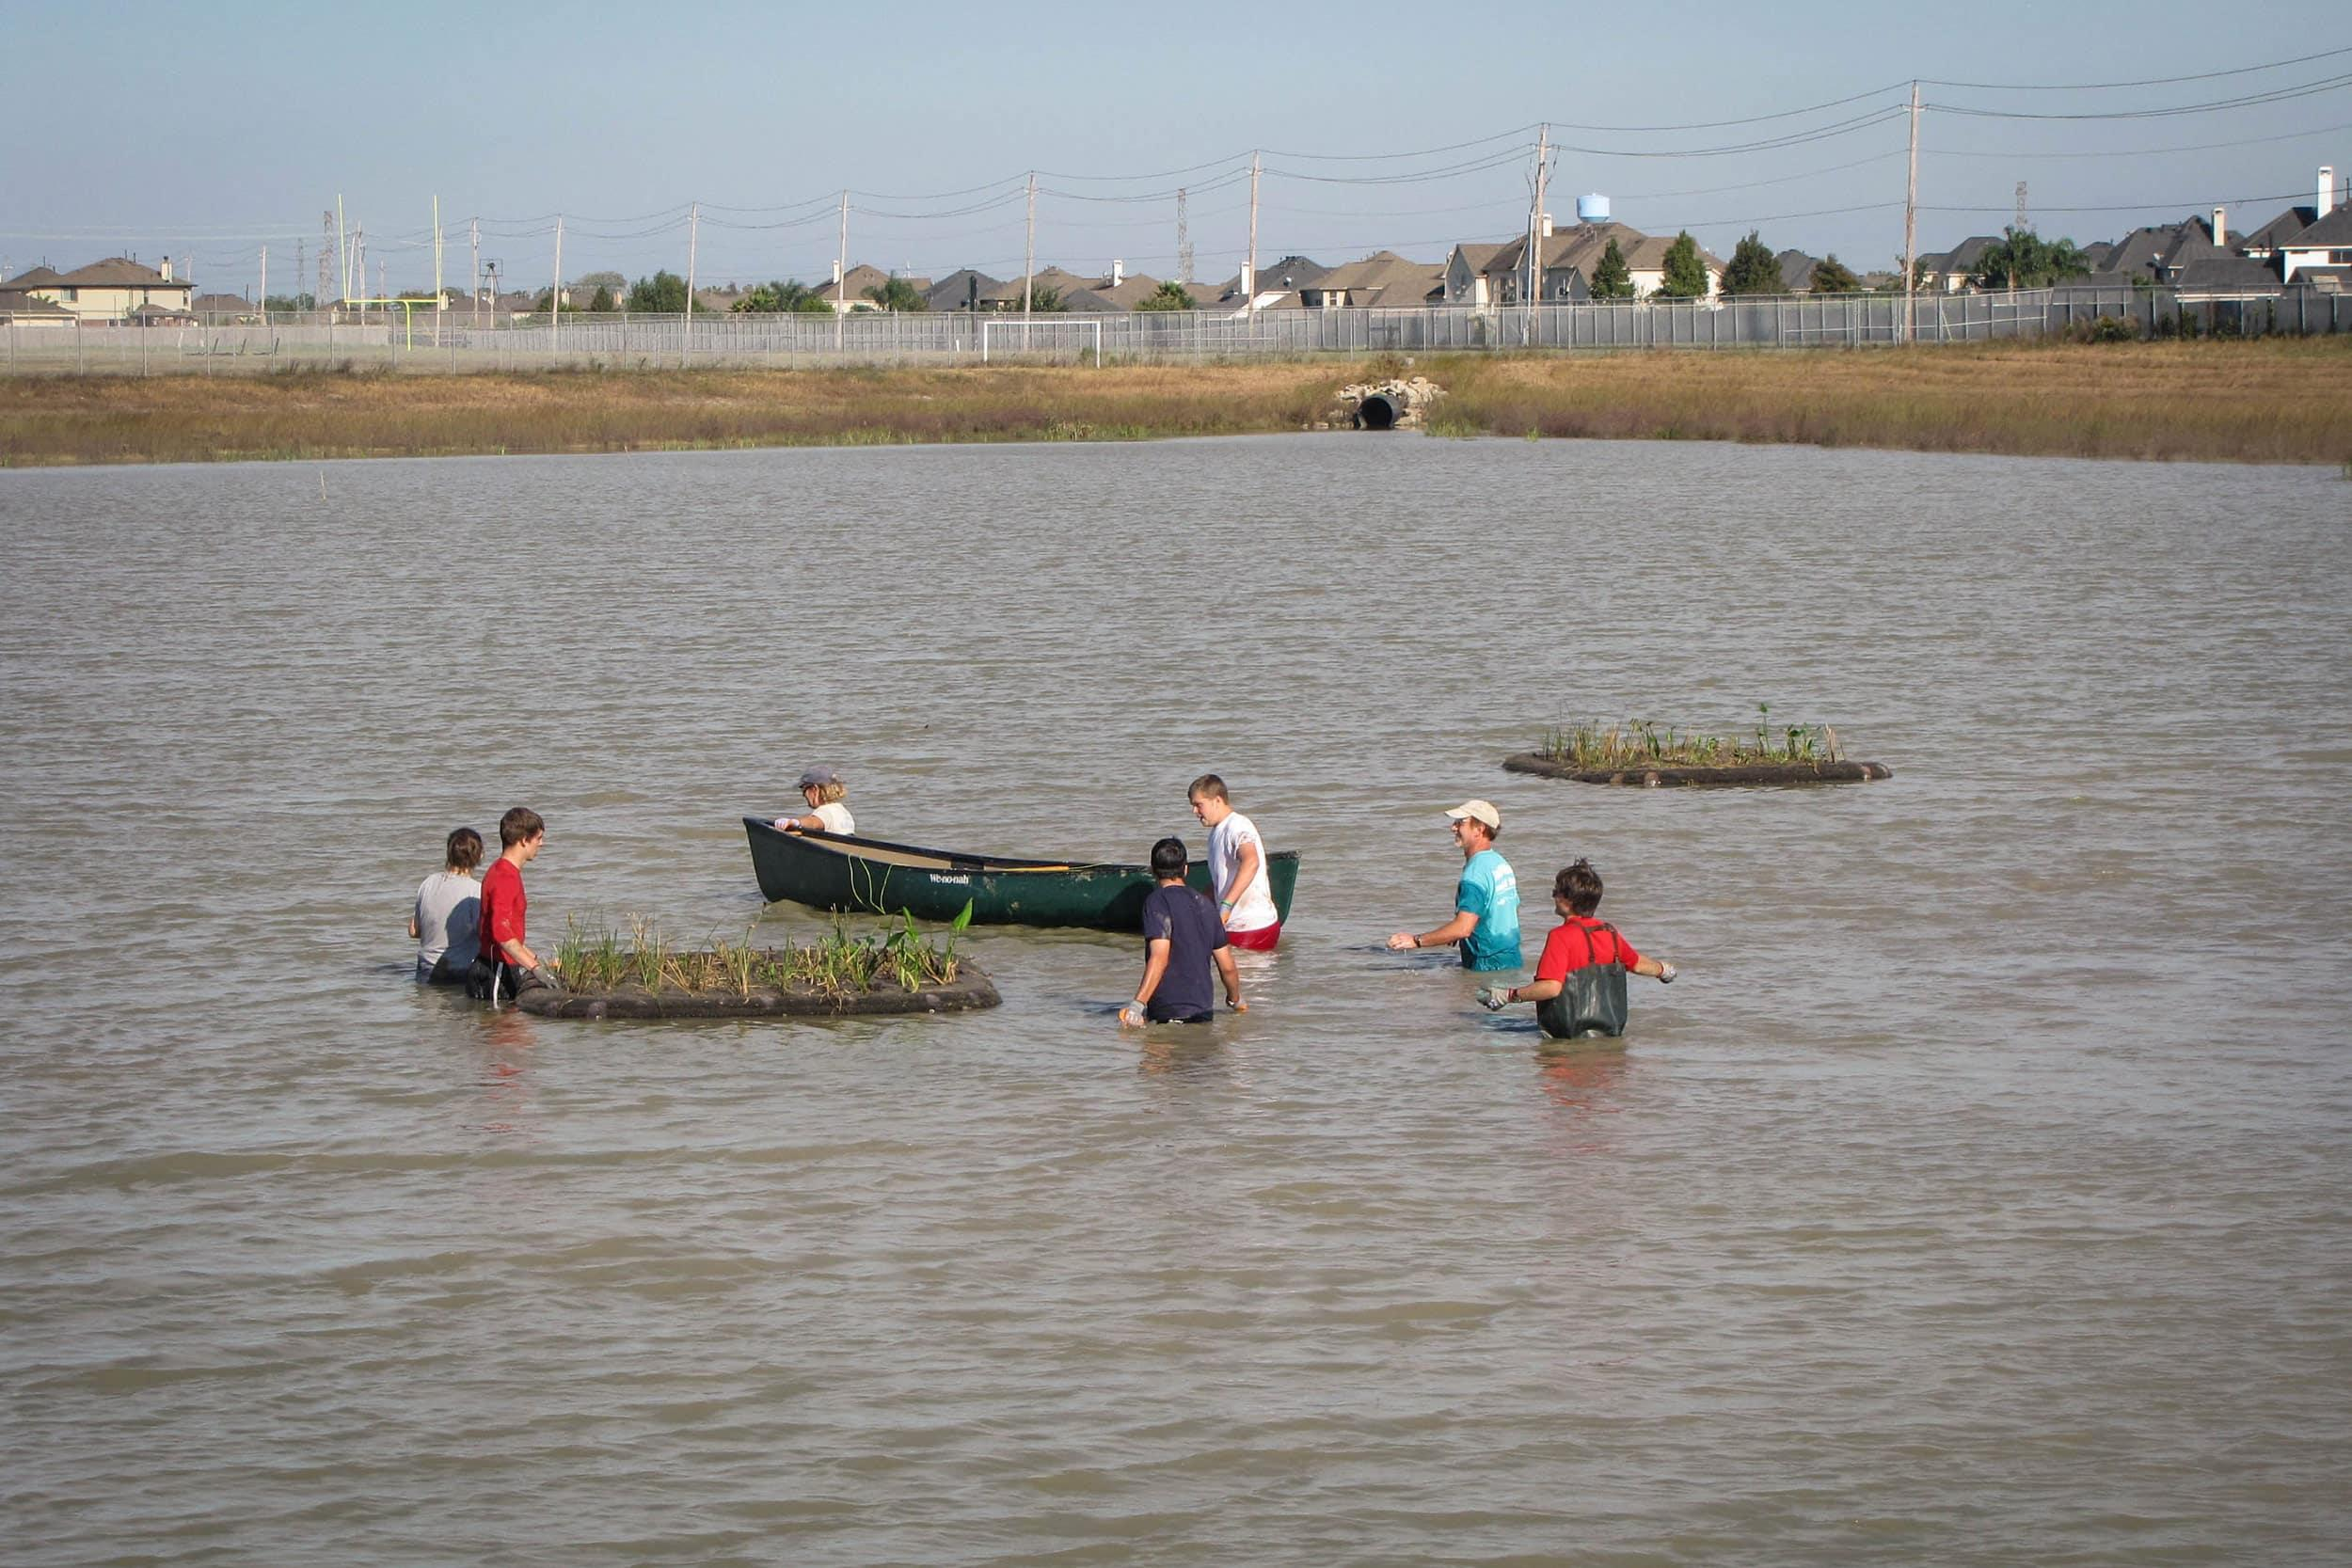 Installing the floating wetlands at CCISD Educational Village. Photo by H. Brown